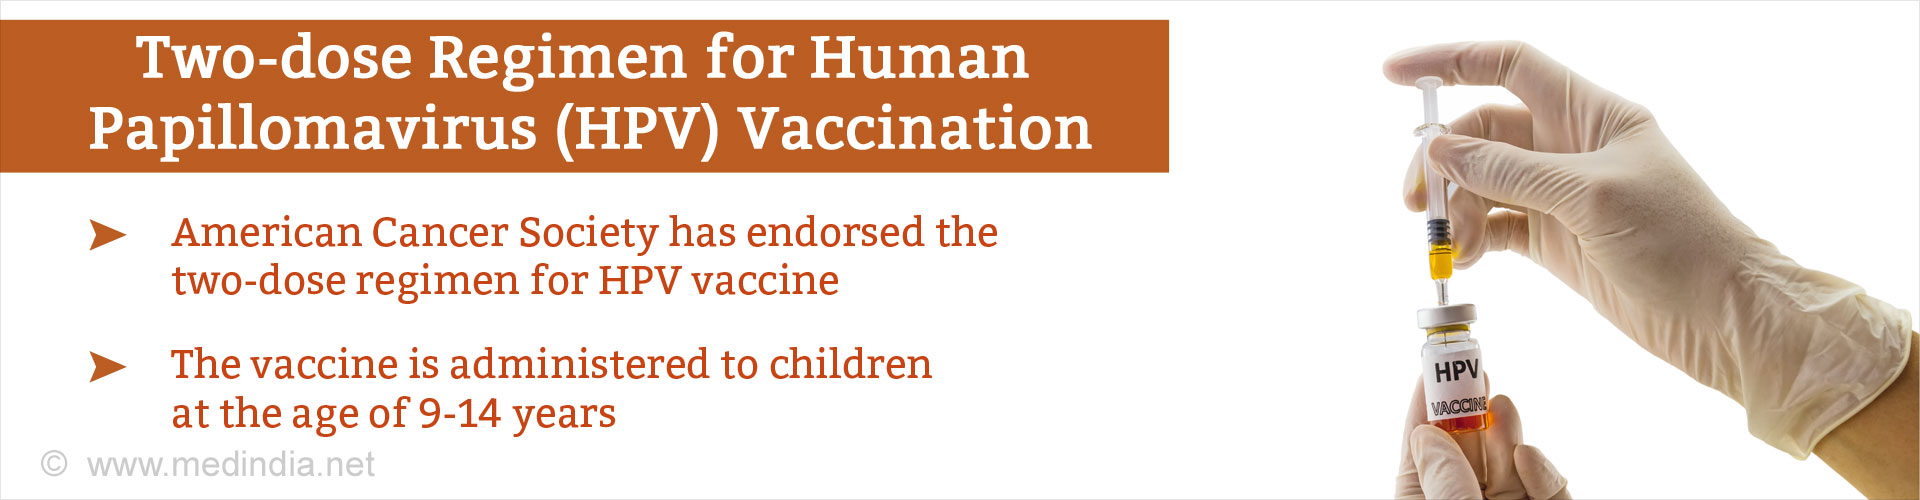 Endorsing Two-Dose Regimen for Human Papillomavirus (HPV) Vaccination